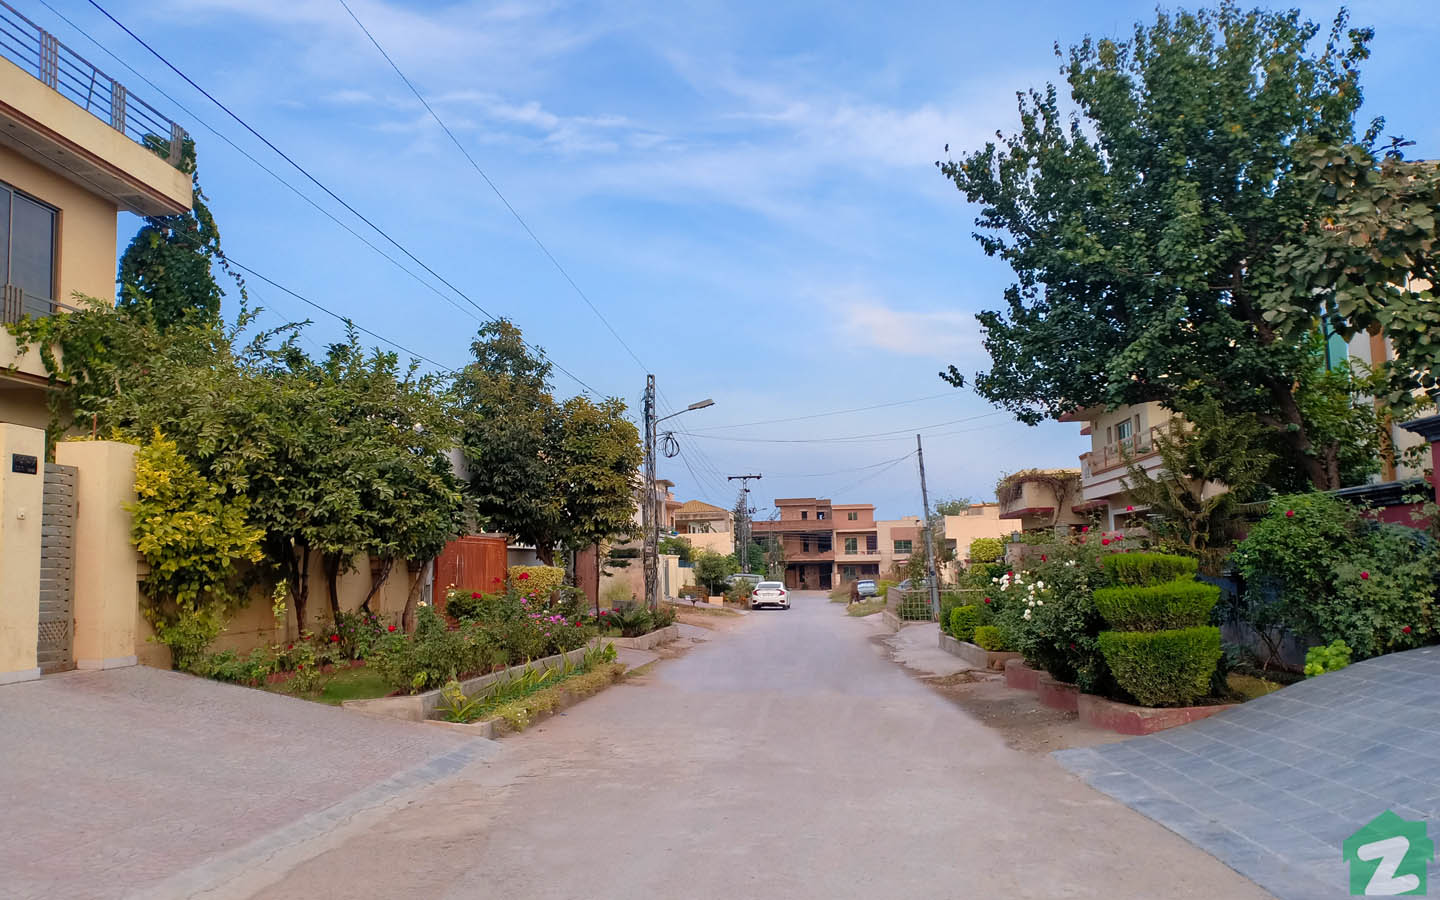 Well-furnished houses are up for sale in Phase 6 Bahria Town, Rawalpindi